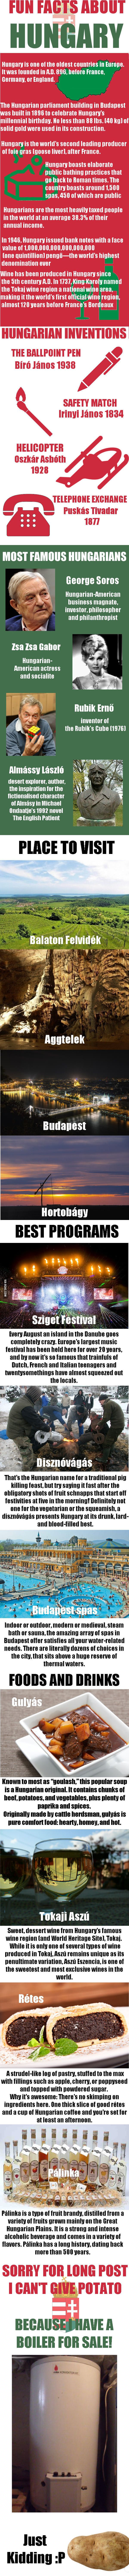 Fun Facts about Hungary!